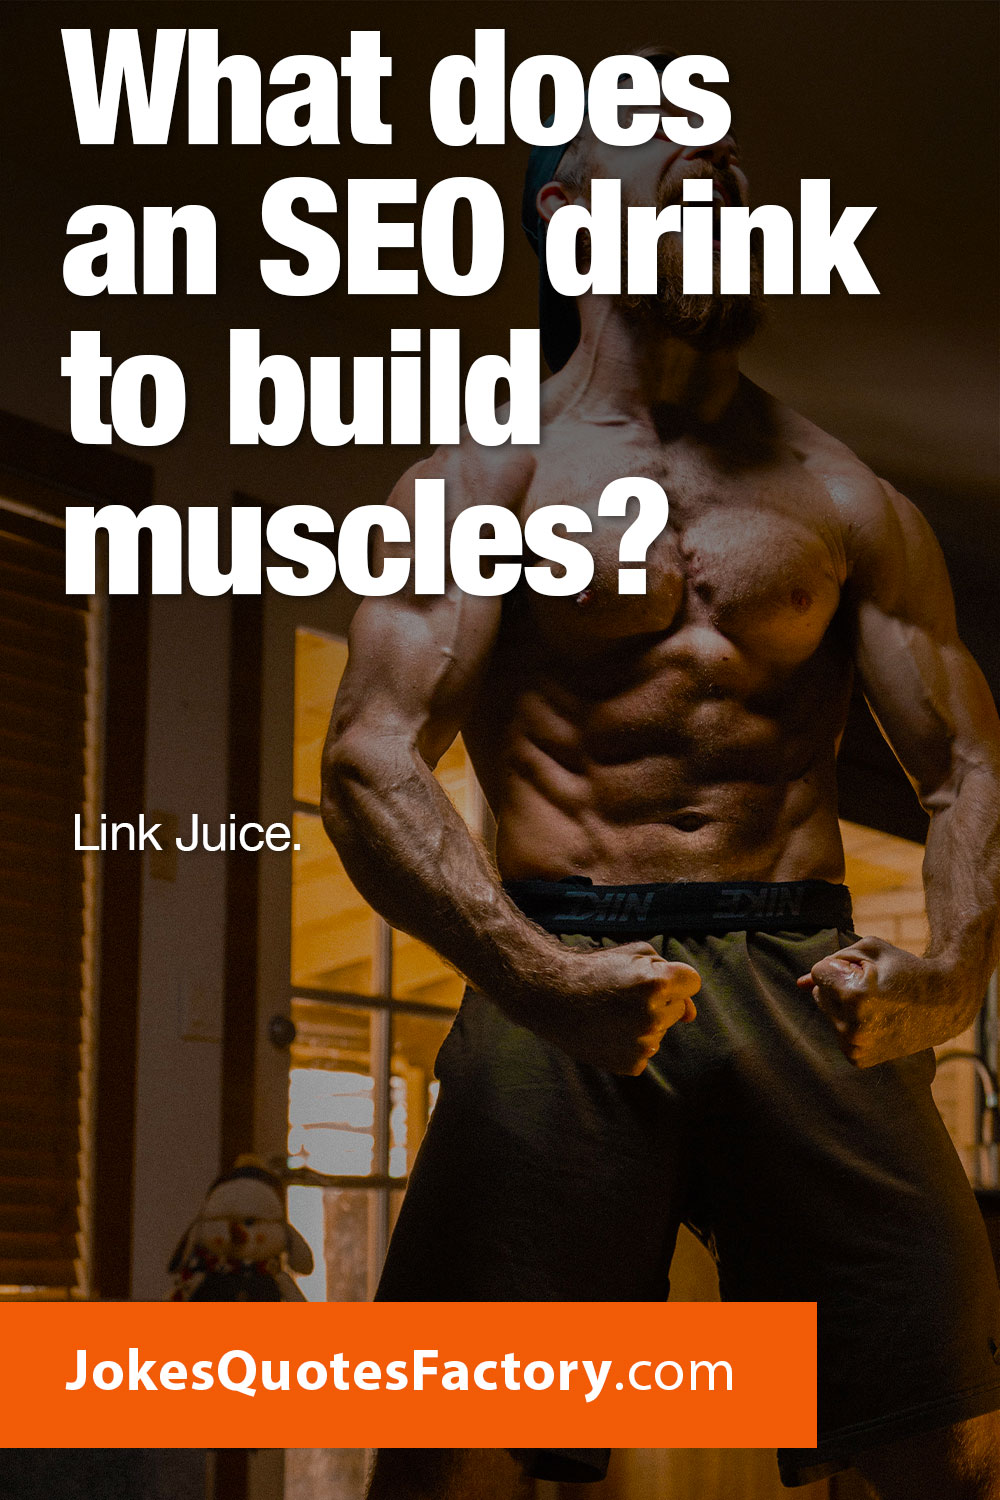 What does an SEO drink to build muscles? Link Juice!